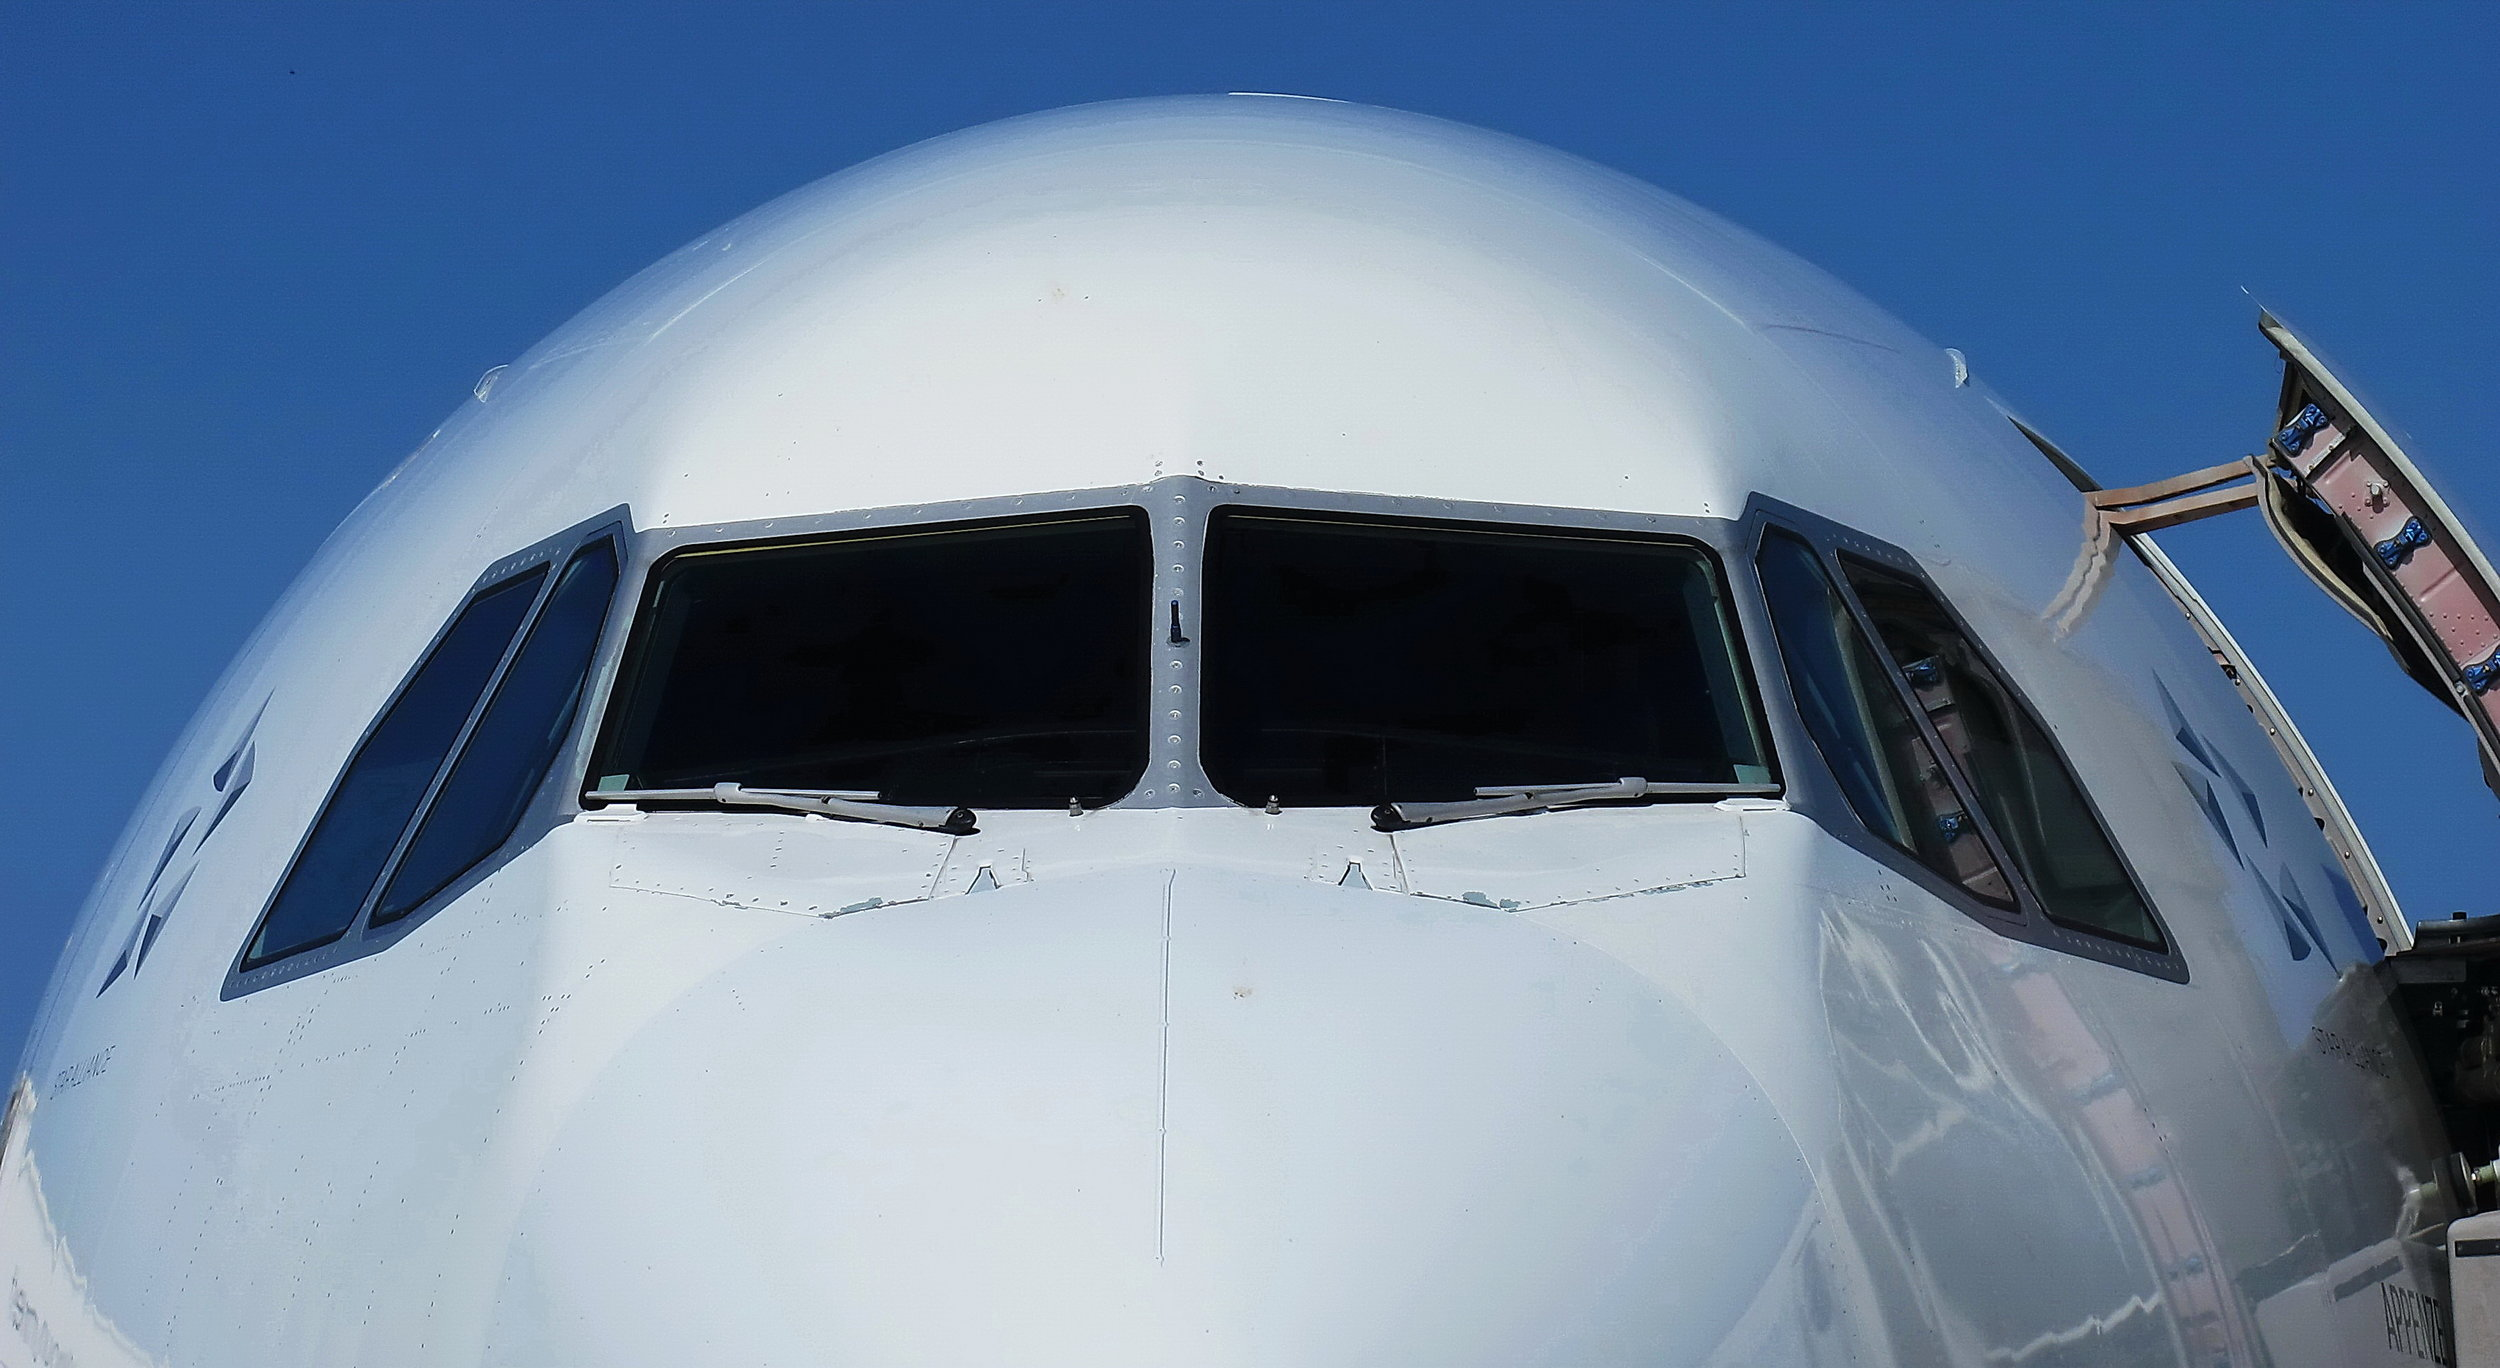 AIRLINES - Maximizing efficiency while maintaining the highest safety standards. We get it. And we can help you get there.